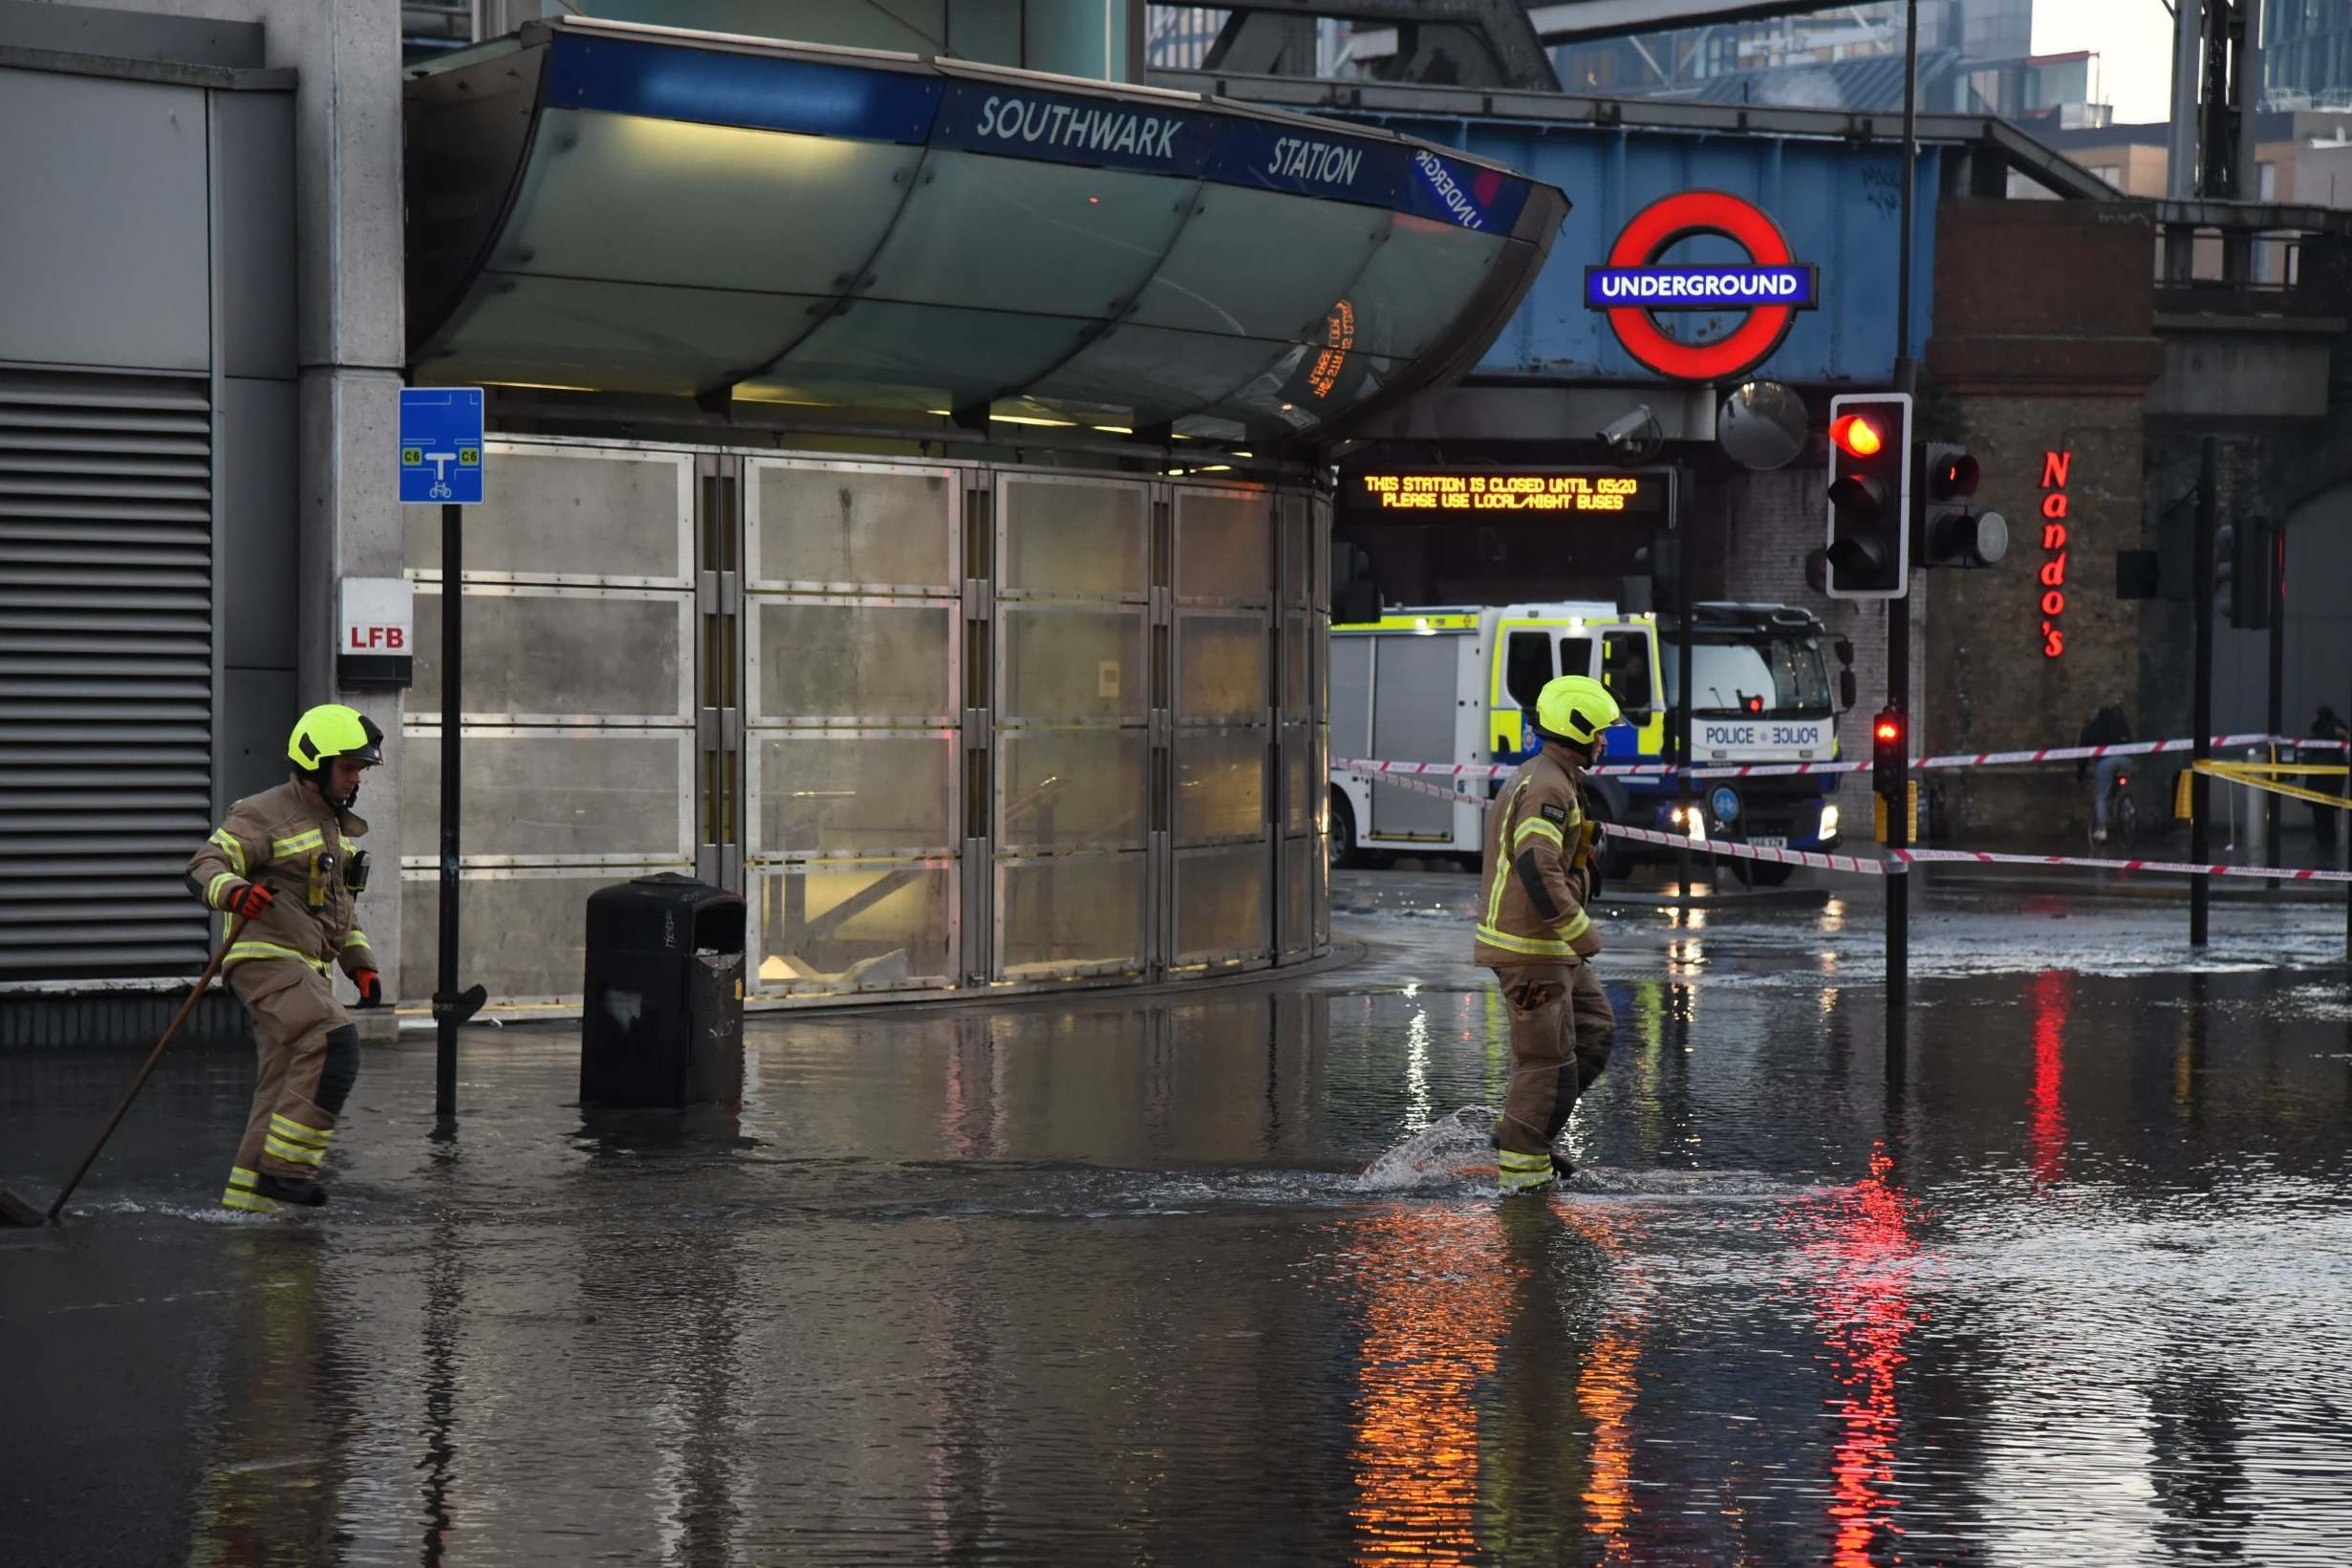 Southwark station closed: dramatic floods and residents without running water while the main outbreak of water causes chaos